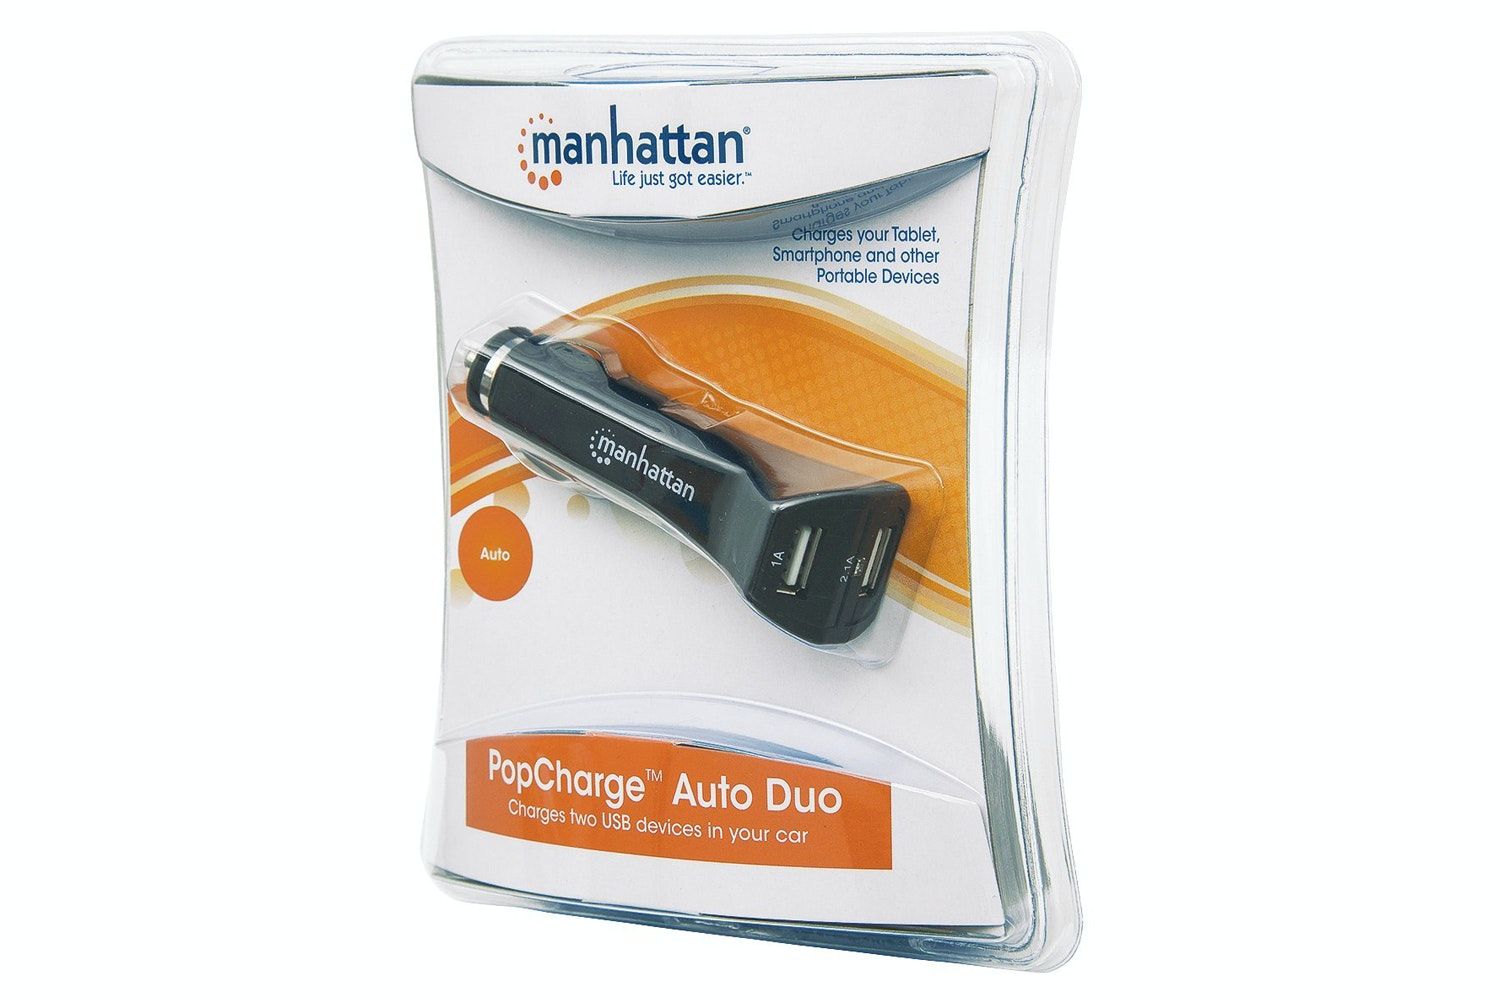 Manhattan PopCharge Auto Duo Car USB Charger